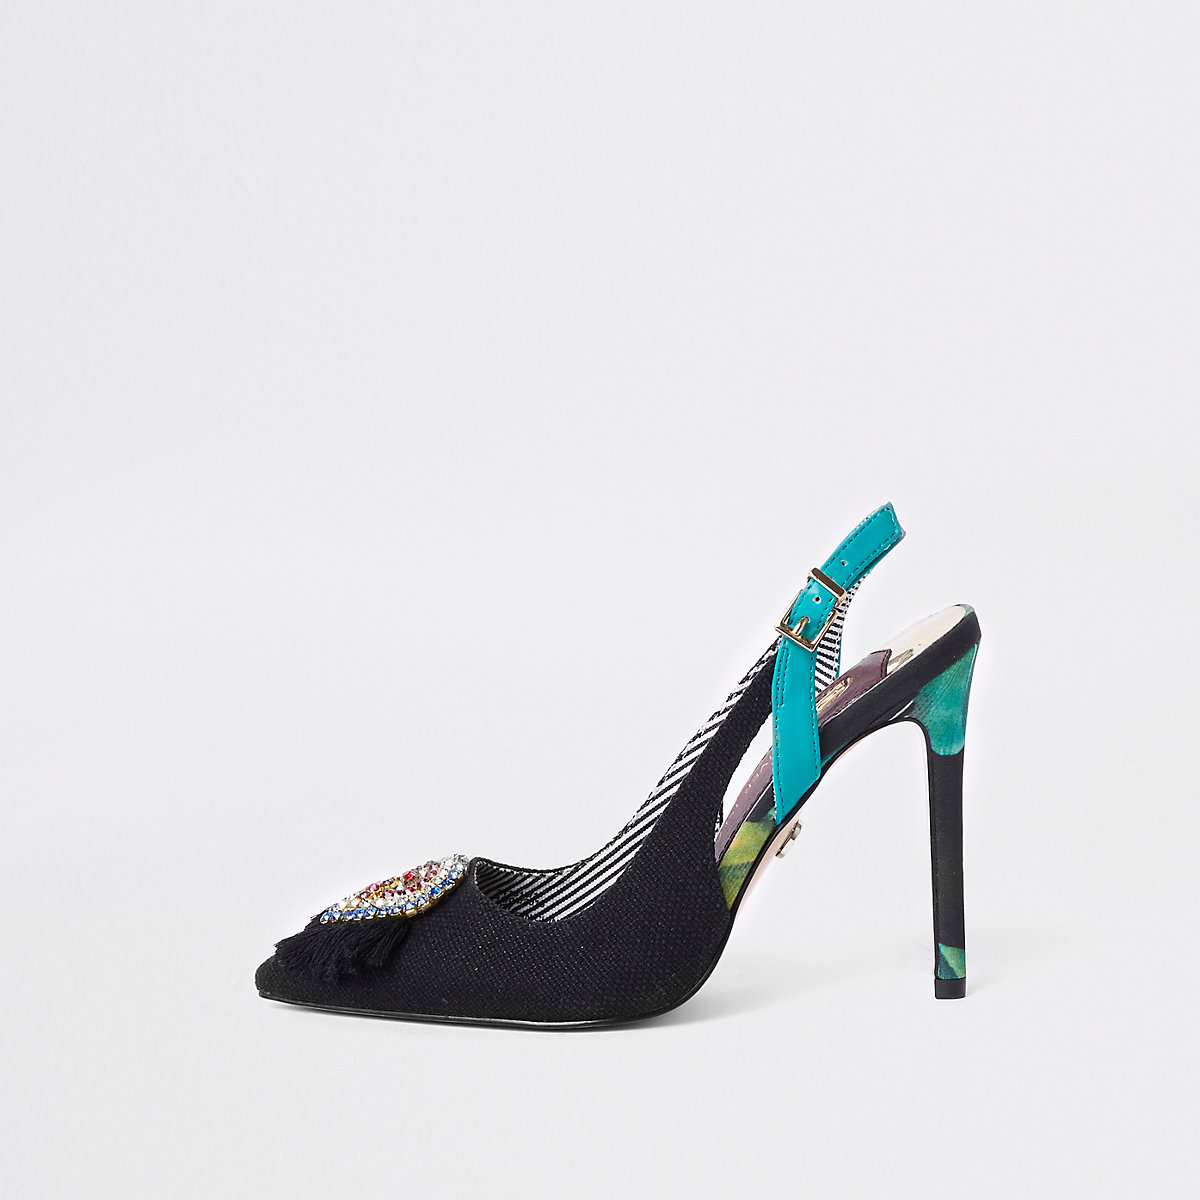 9caa55263c56 Black jewel embellished slingback court shoes Black jewel embellished  slingback court shoes ...